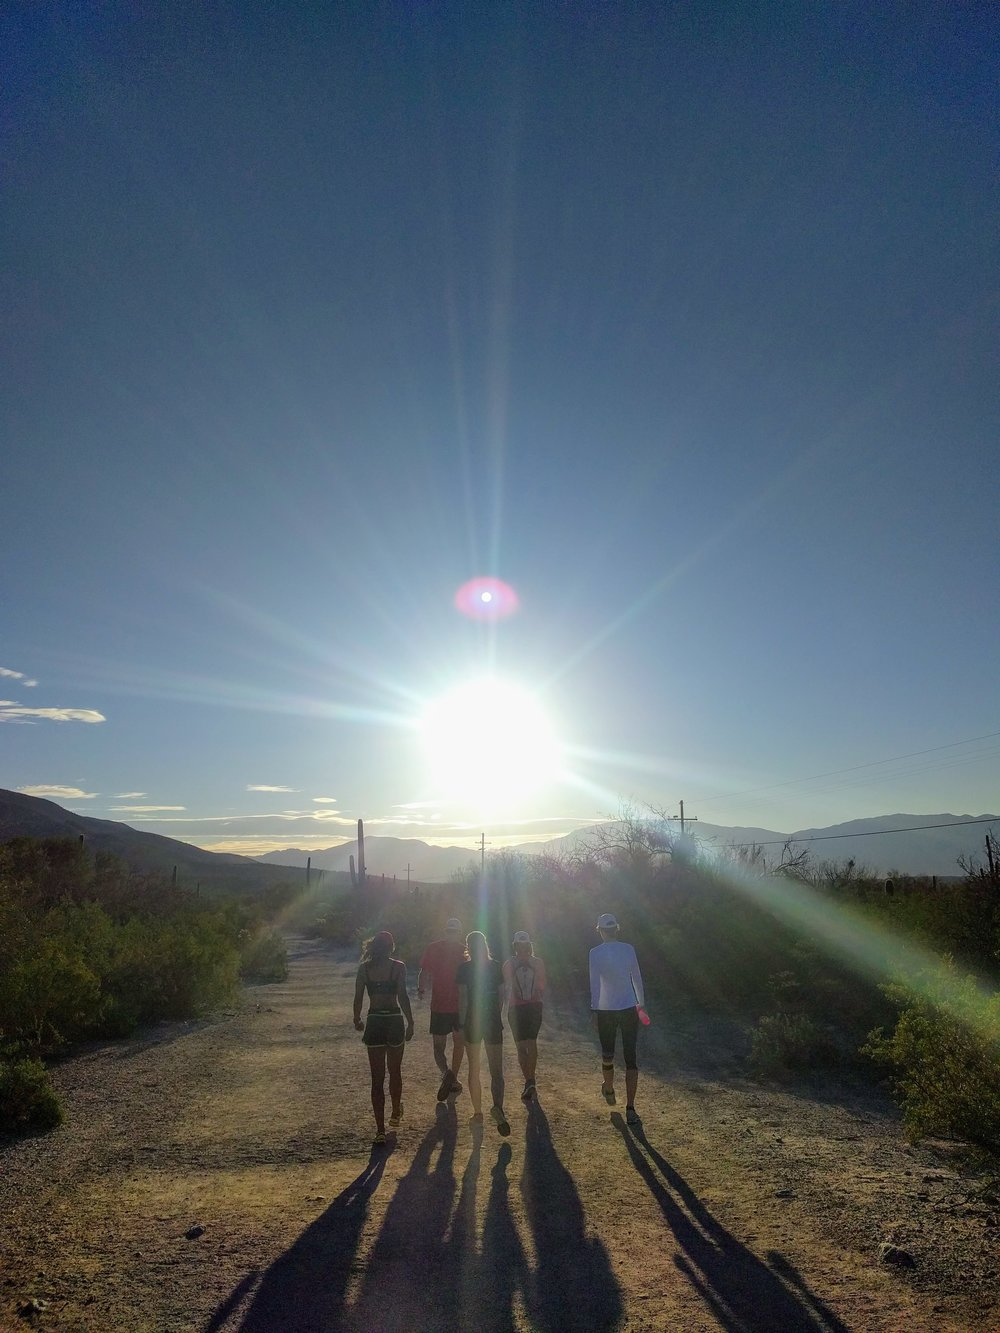 Fellow campers starting the Sabino Canyon run.